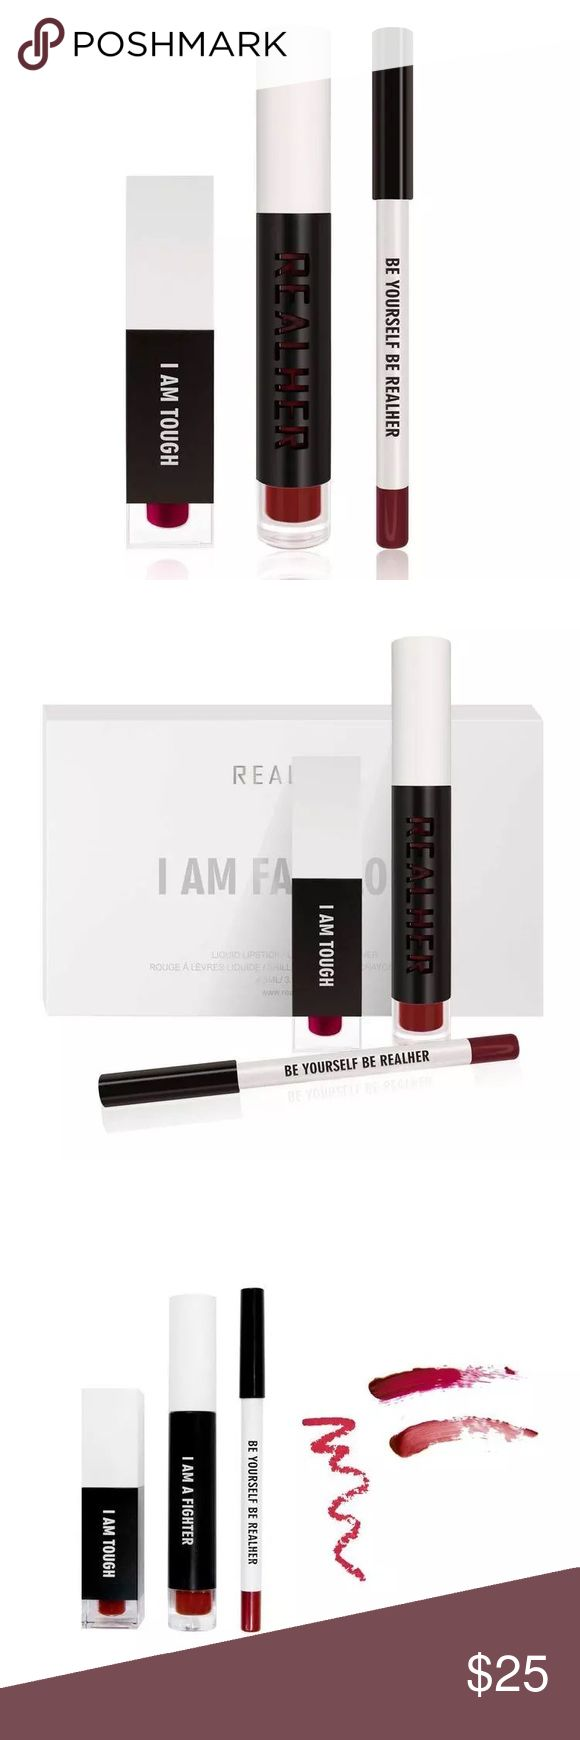 Realher DEEP RED lip liner lip gloss lipstick 👄 Realher~ I Am Fabulous Lipstick/Lip Gloss/Lip Liner Set ~DEEP RED New in sealed Box~ Matte Liquid Lipstick~Lip Plumping Lip Gloss~ Lip Liner~ Liquid Lipstick~4.5ML, Lip Gloss~3.5ML,  Lip Liner~1.2G Realher Makeup Lip Balm & Gloss